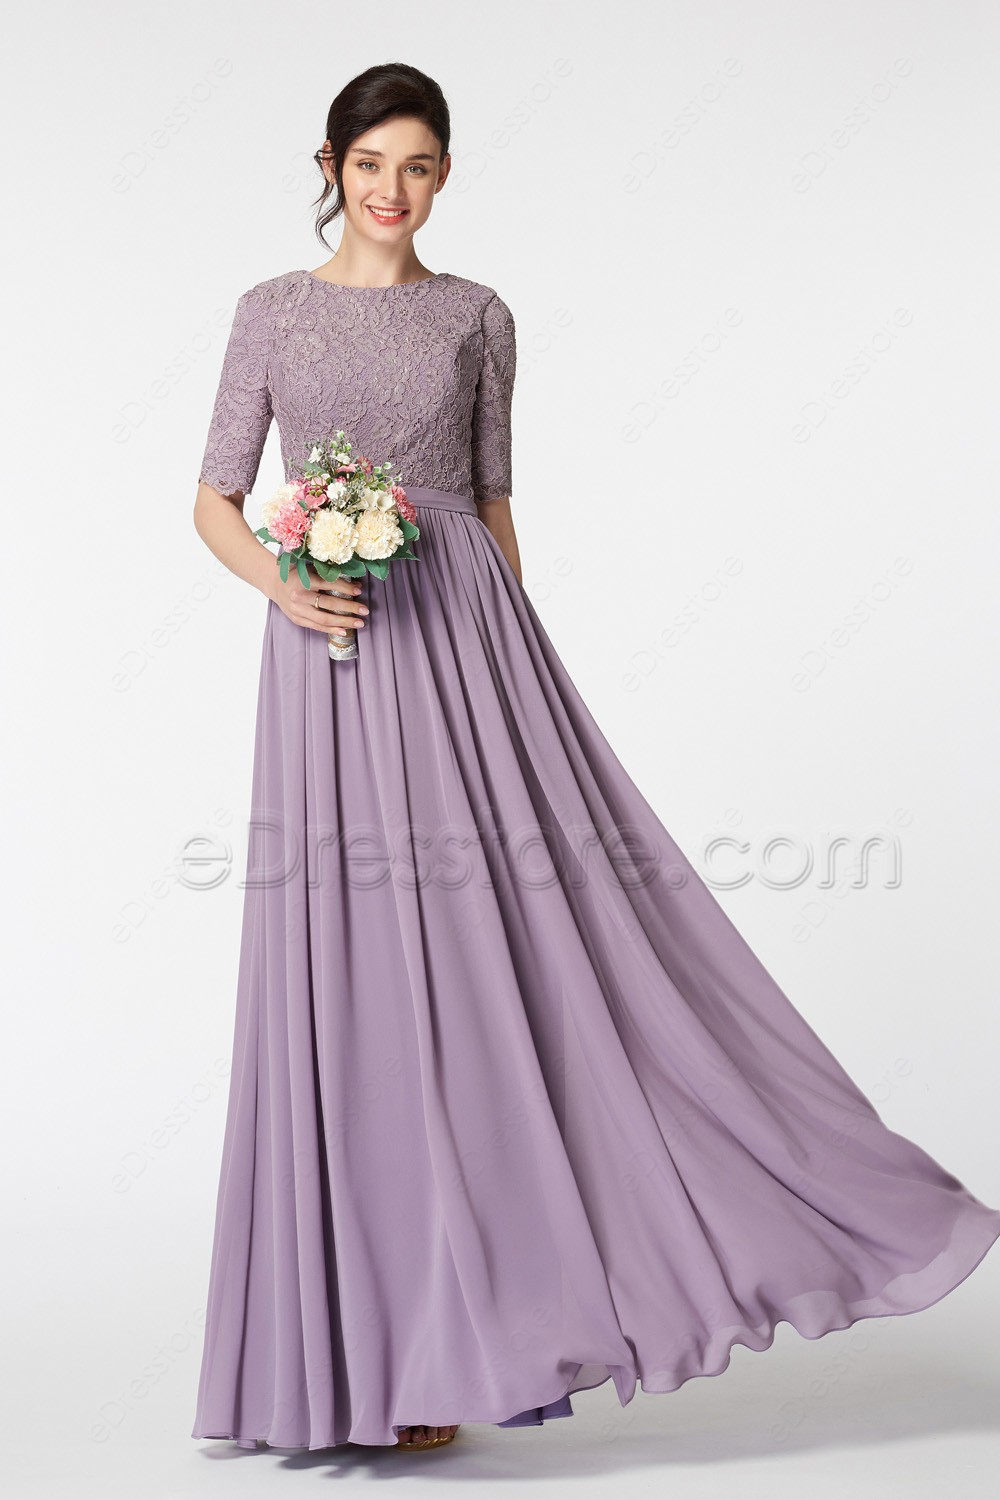 Buy 2017 long modest bridesmaid dresses for Modest wedding dresses with long sleeves